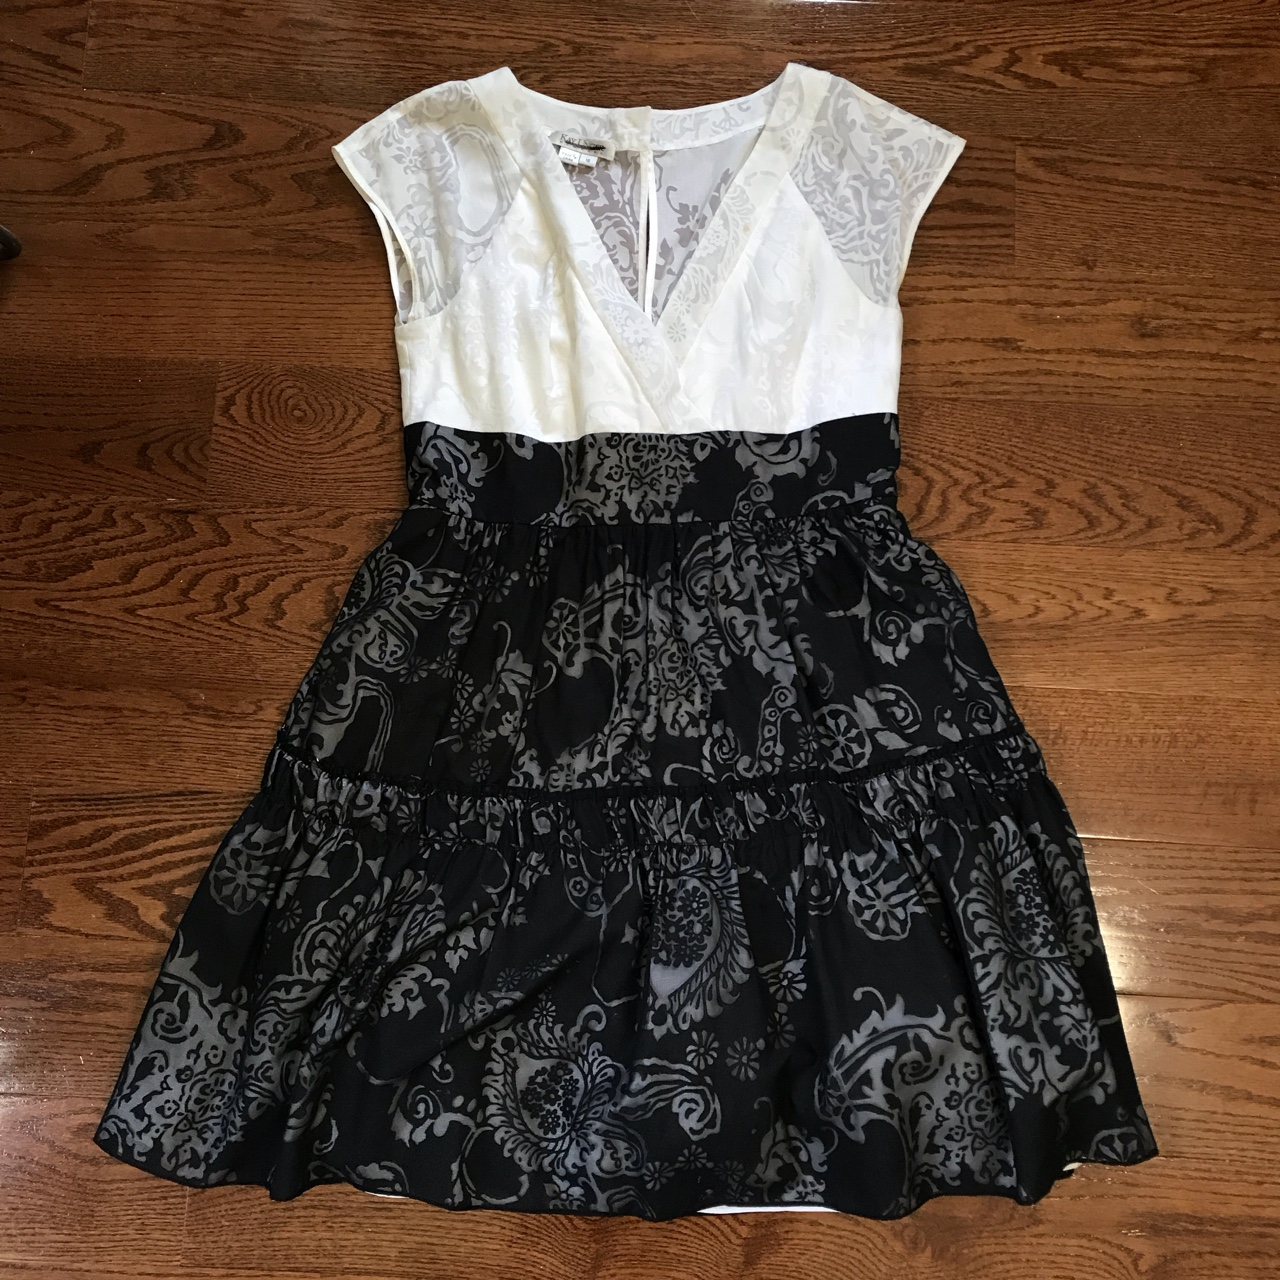 Product Image 1 - Kay Unger Black and White